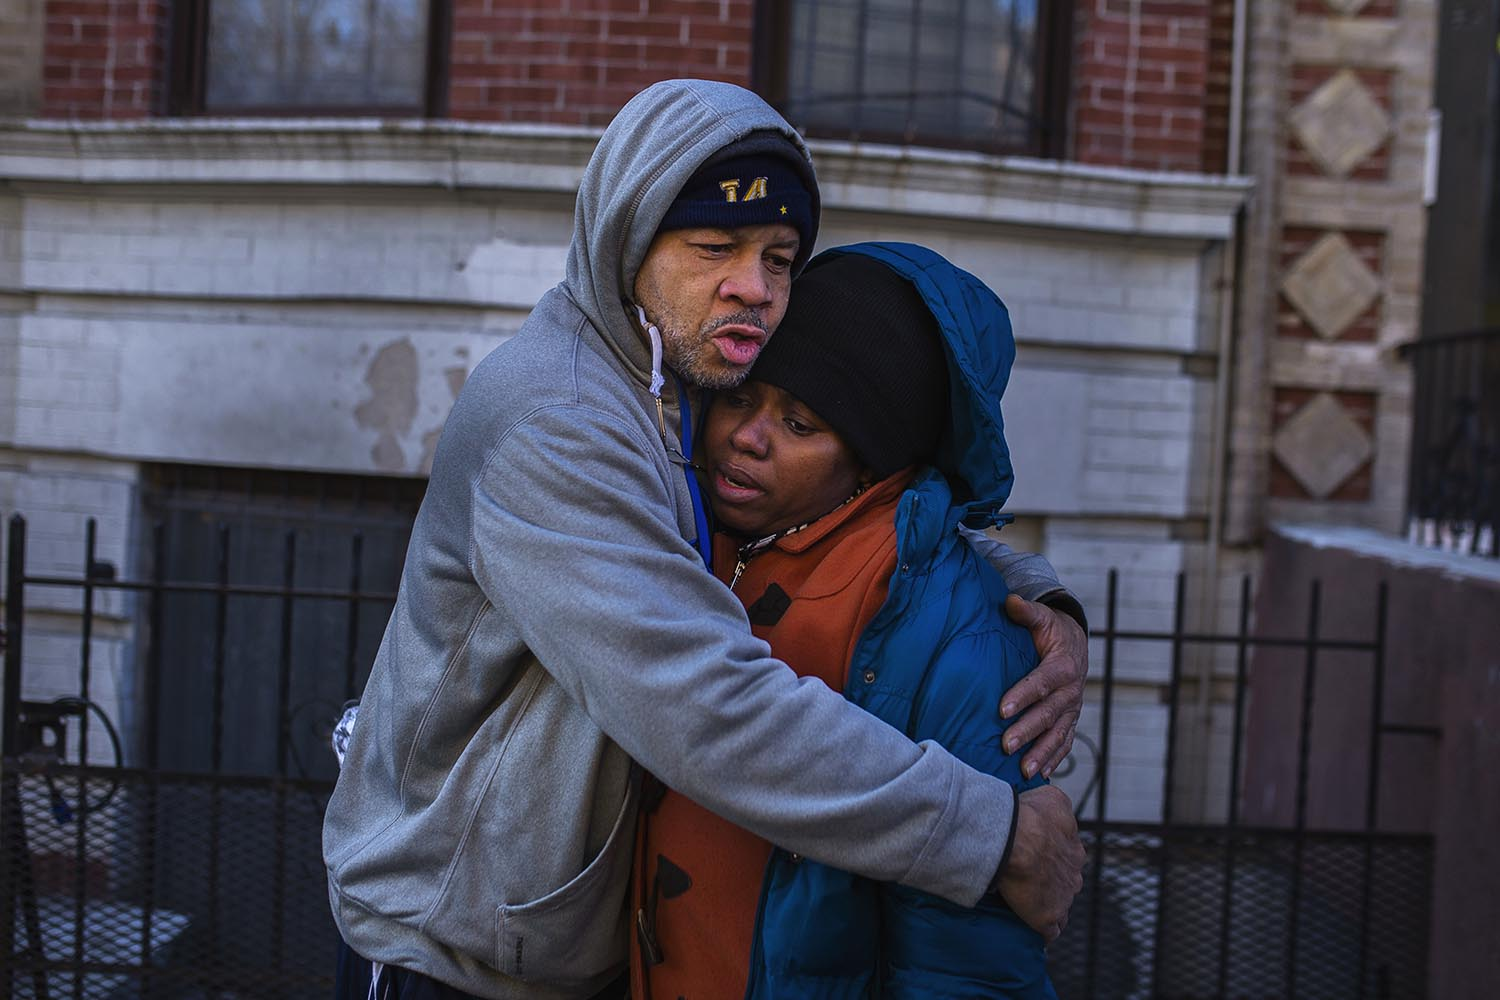 <div class='meta'><div class='origin-logo' data-origin='AP'></div><span class='caption-text' data-credit='AP Photo/Andres Kudacki'>Emelia Ascheampong, right, a resident of the building where more than 10 people died in a fire on Thursday, is hugged by a friend on Friday, Dec. 29, 2017, in the Bronx.</span></div>